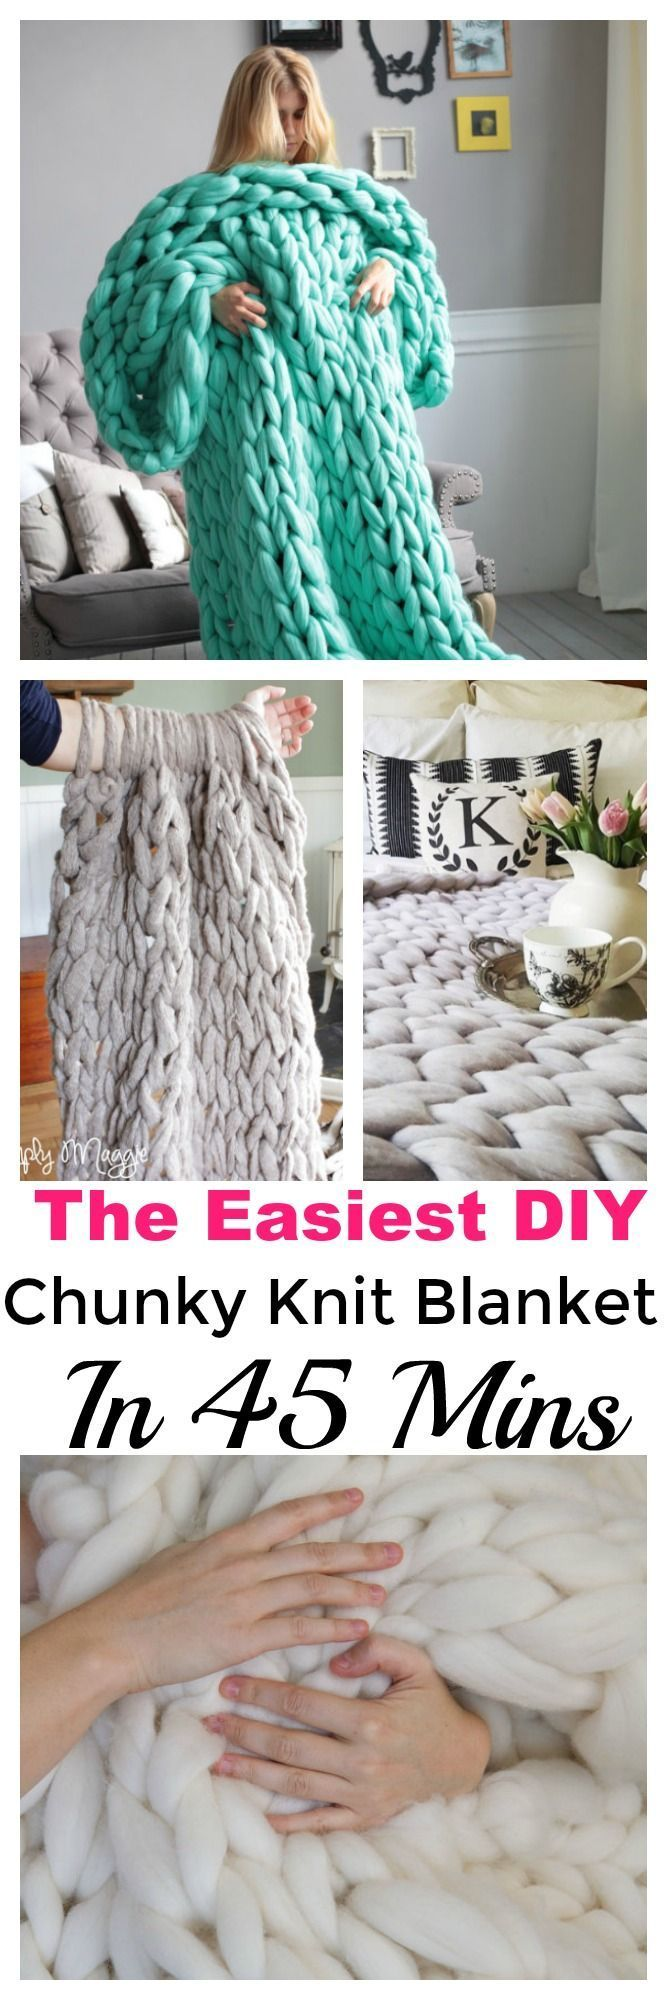 565 best DIY Projects & Crafts images on Pinterest | Activities for ...